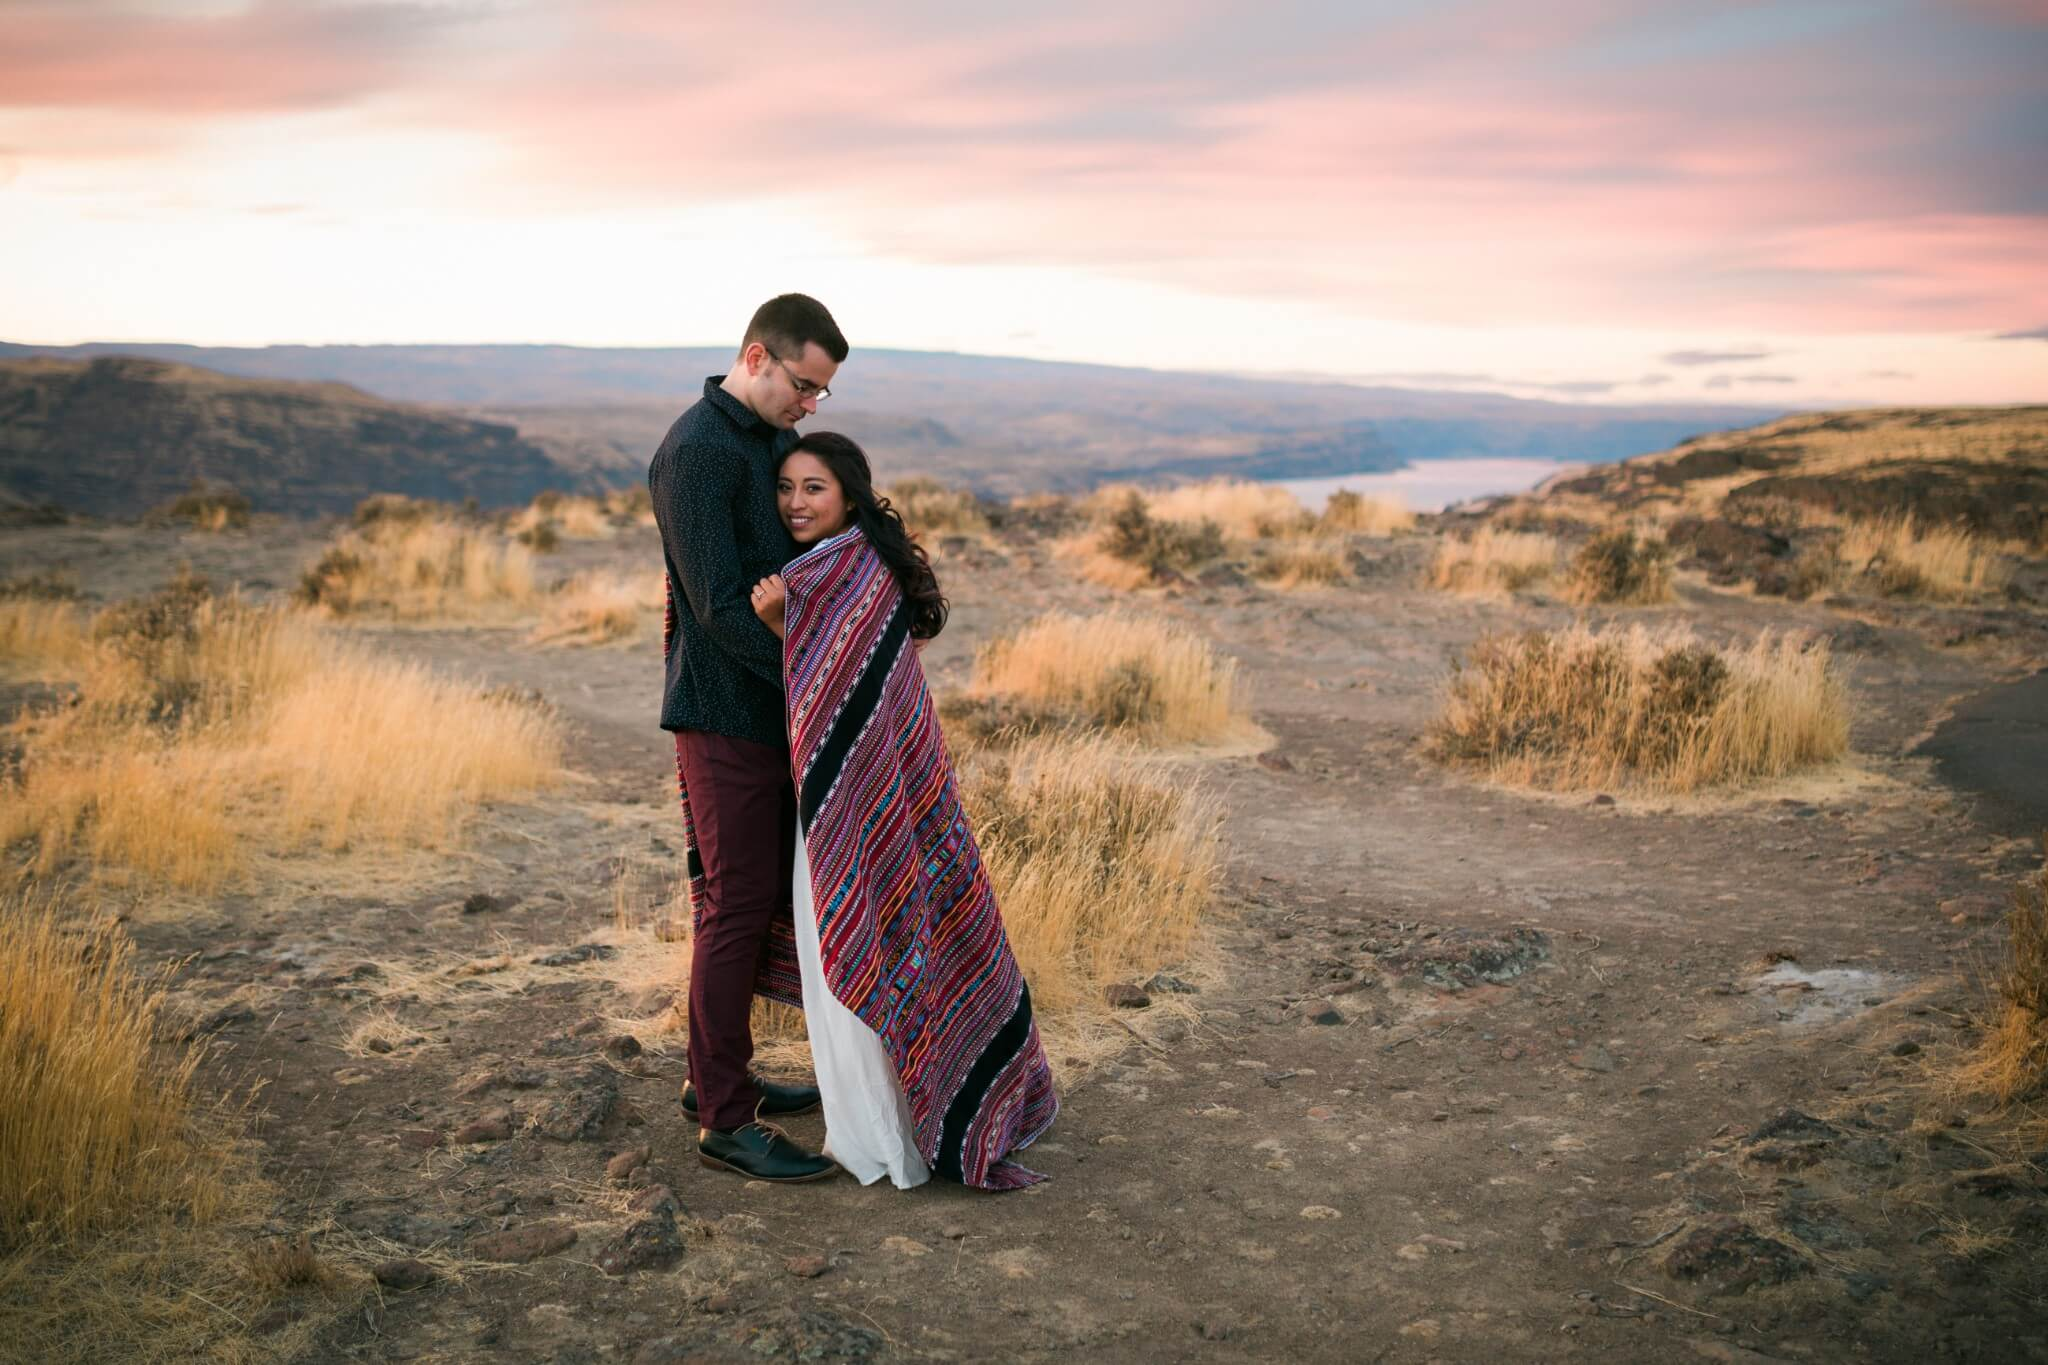 Lesly & Michael Vantage Engagement by Bill Weisgerber Spokane Photographer (66 of 71).jpg